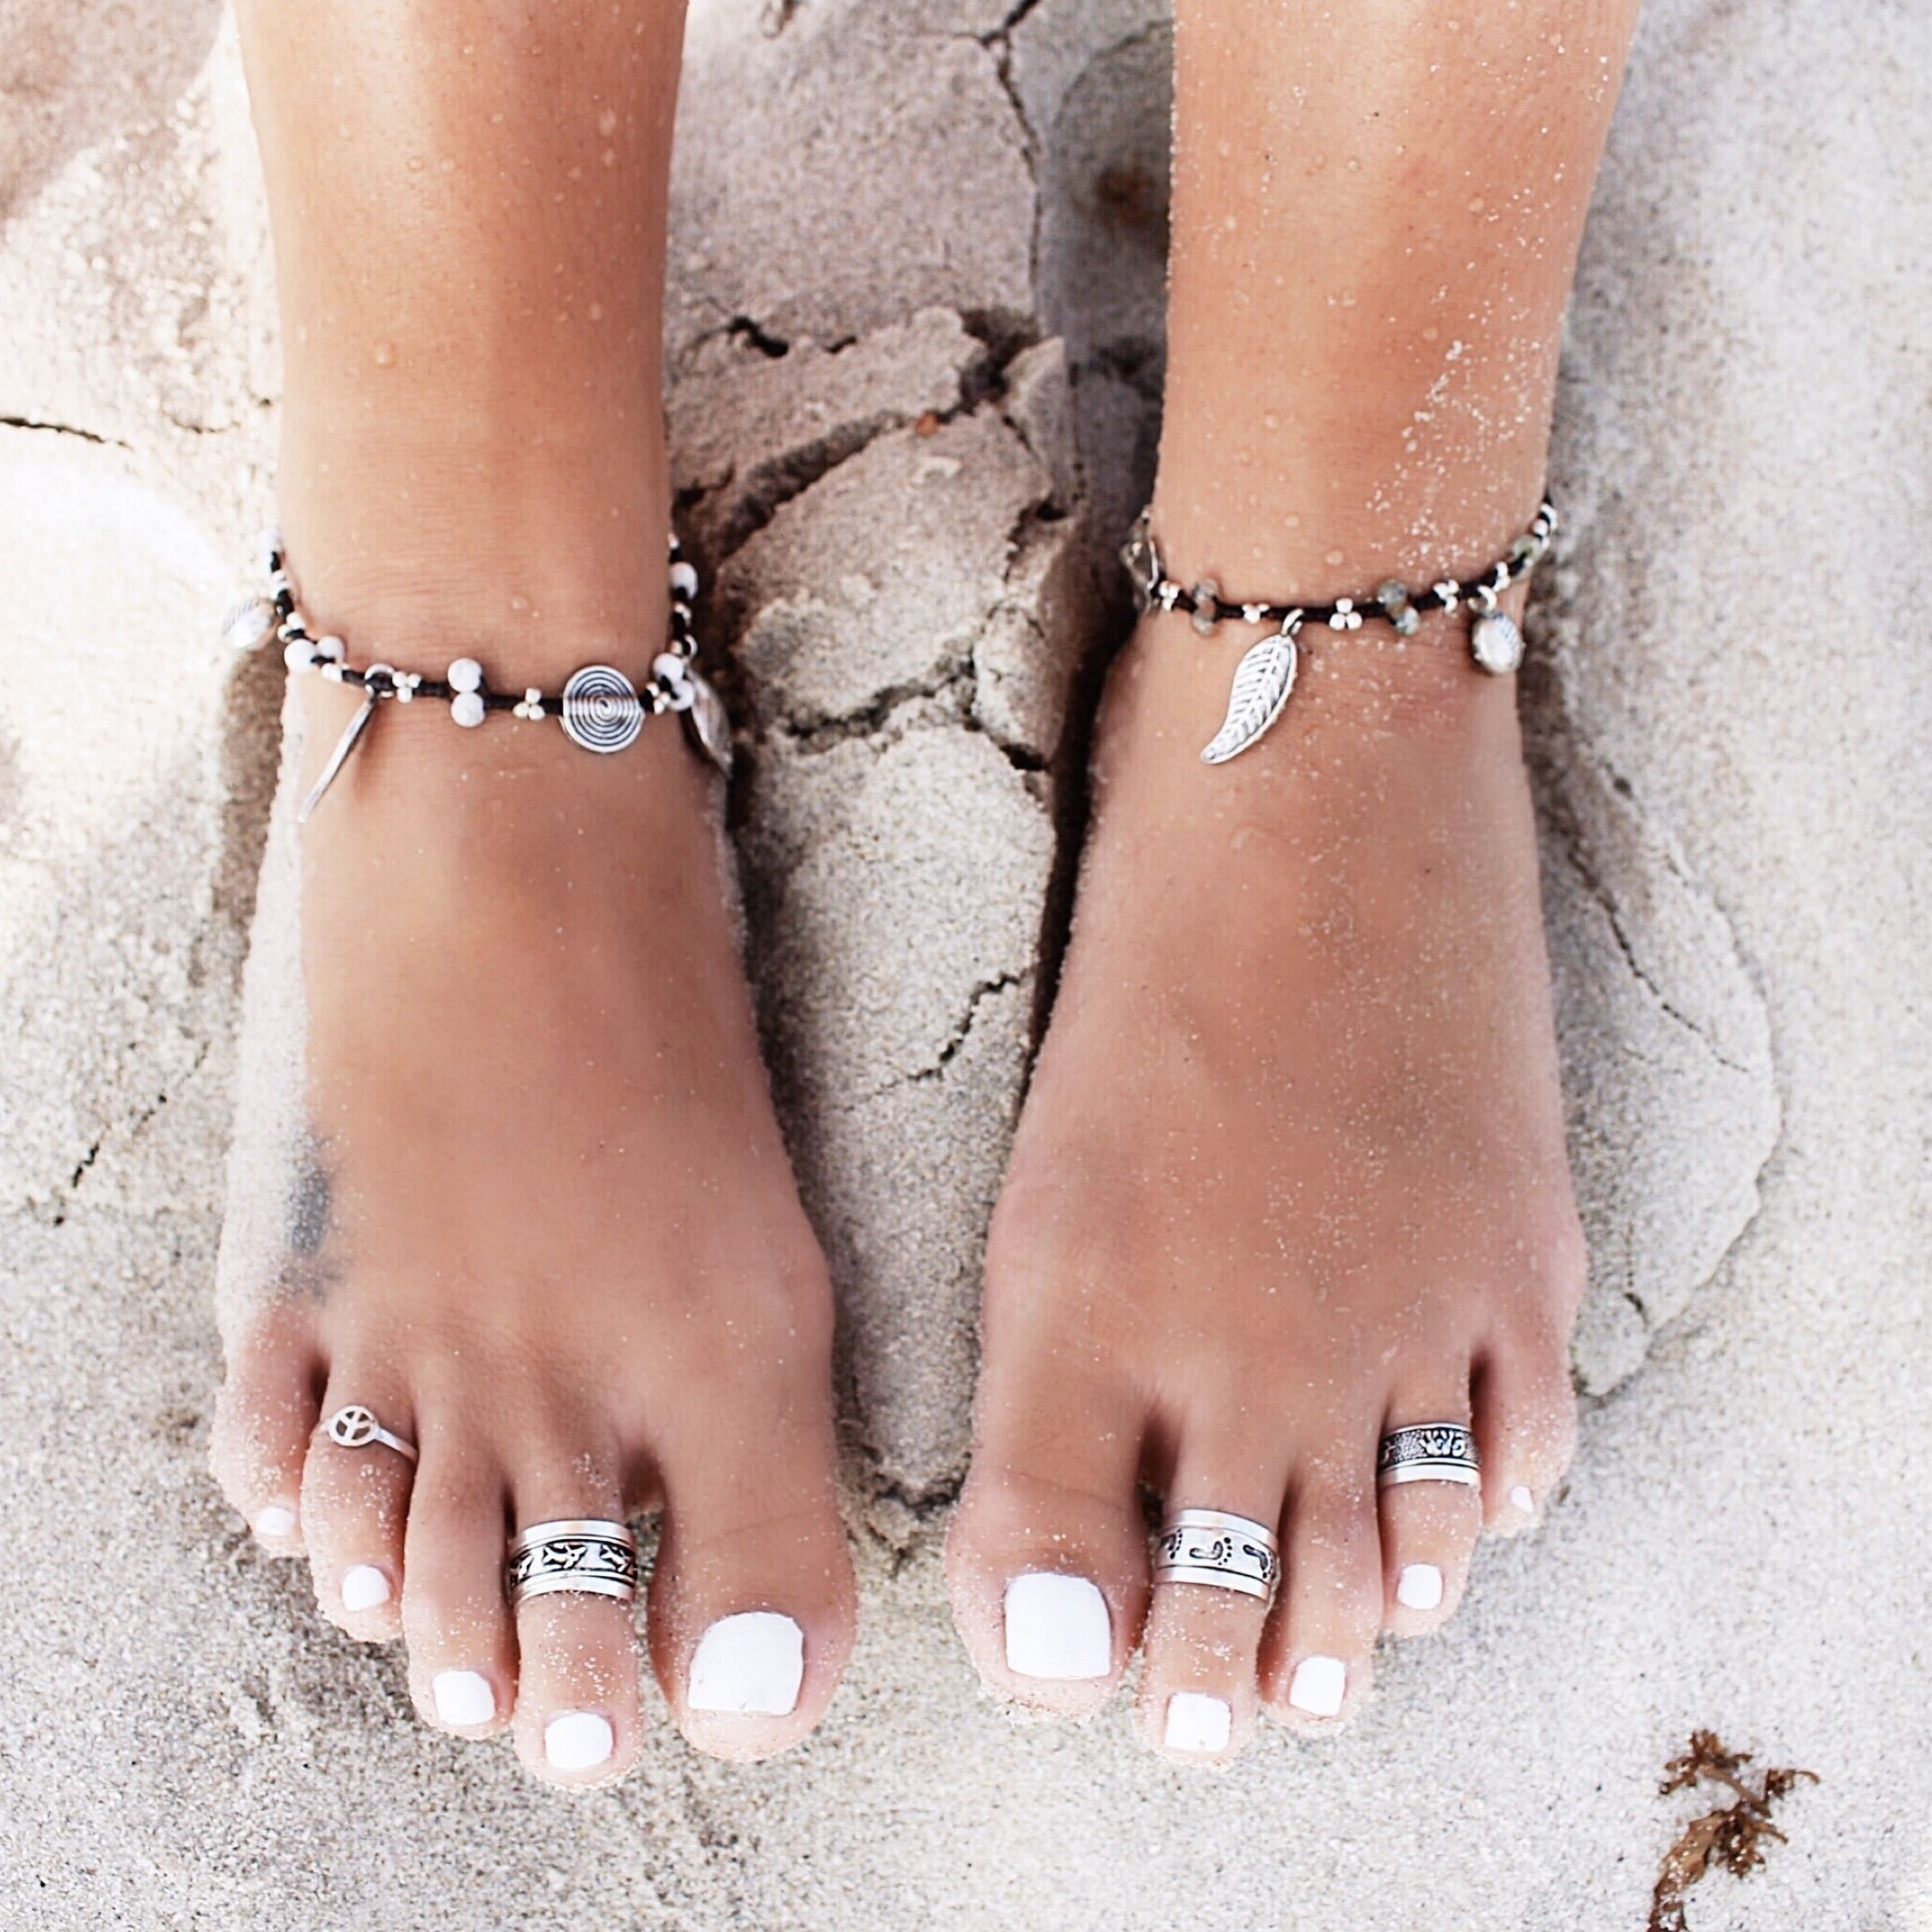 ≫∙∙Boho, Feathers + Gypsy Spirit∙∙≪ | Nails | Pinterest Pertaining To Latest Feather Toe Rings (View 1 of 15)